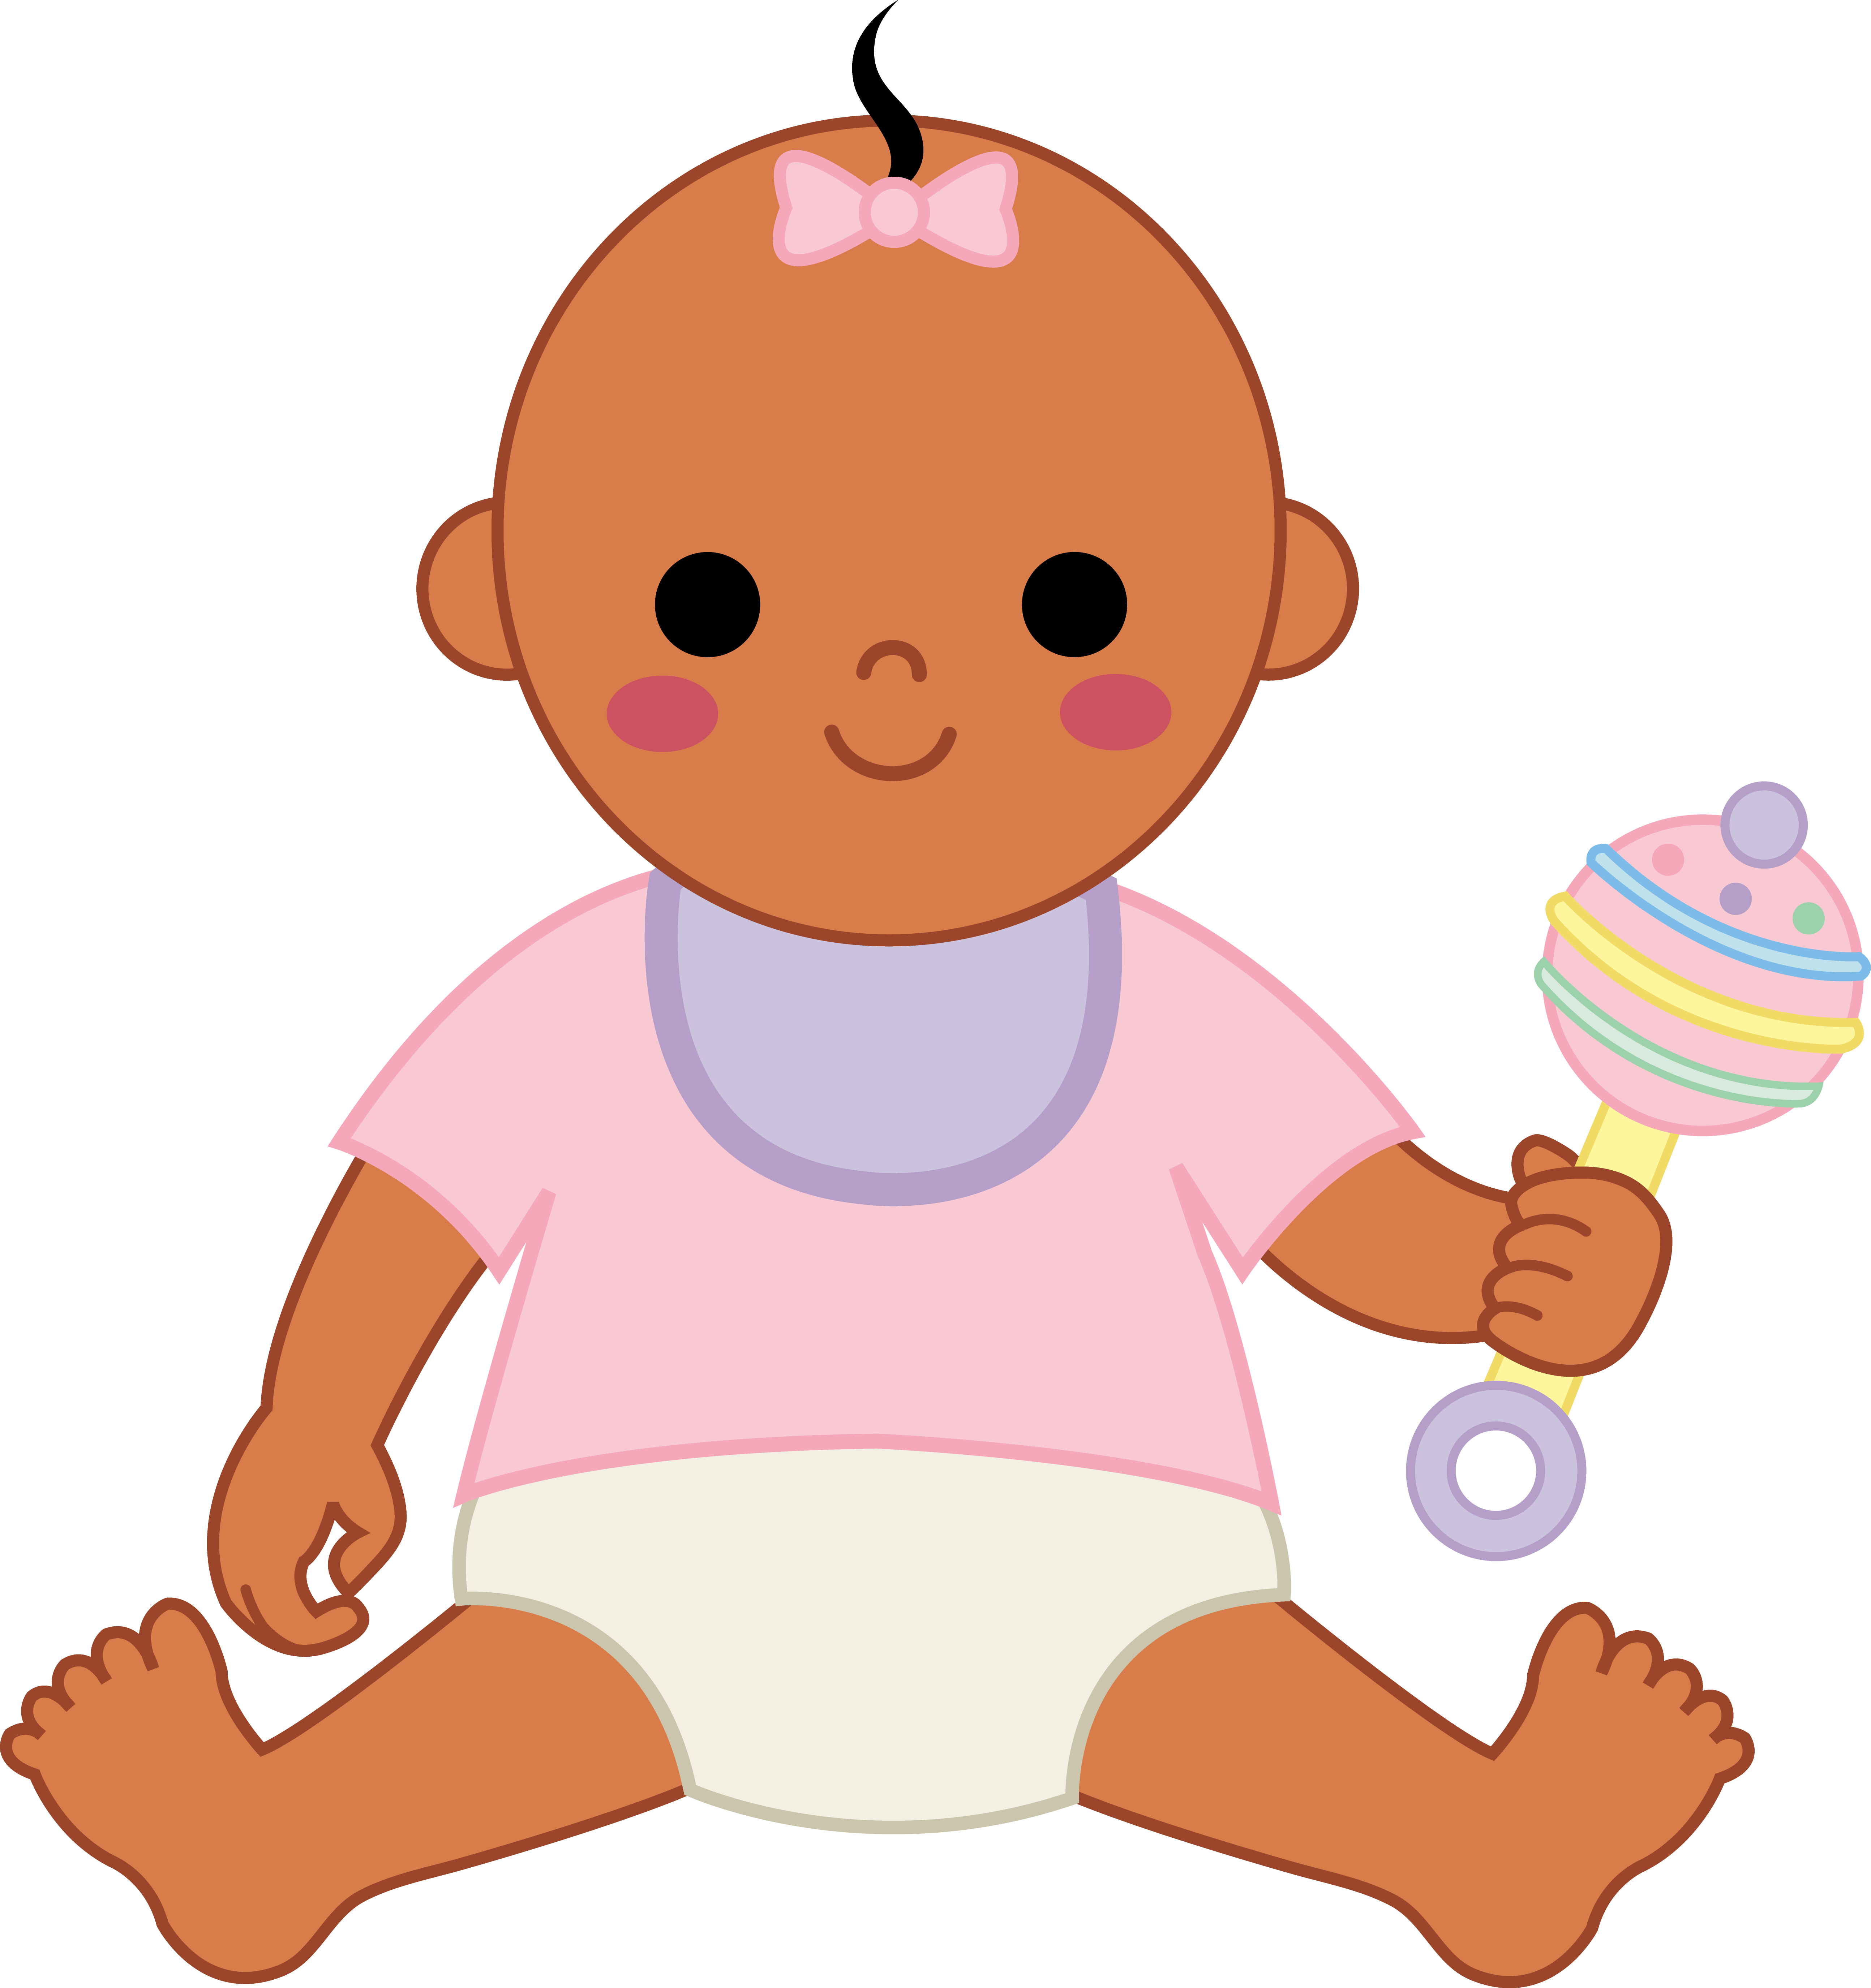 Free Baby Doll Clipart, Download Free Clip Art, Free Clip.